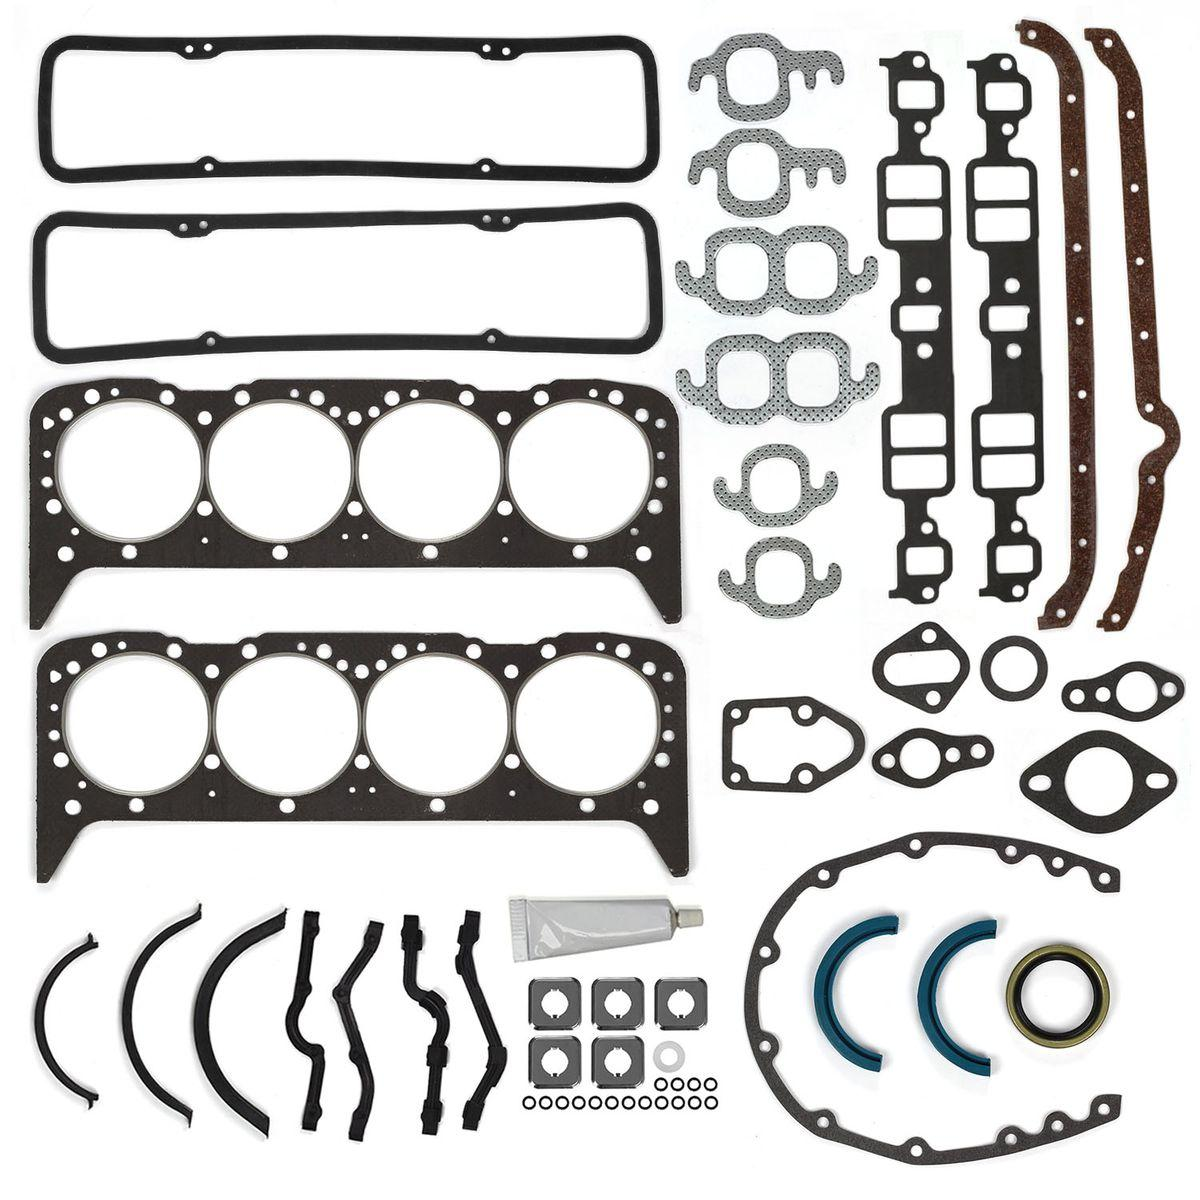 Engine Overhaul Gasket Set Fits 55 79 Small Block Chevy